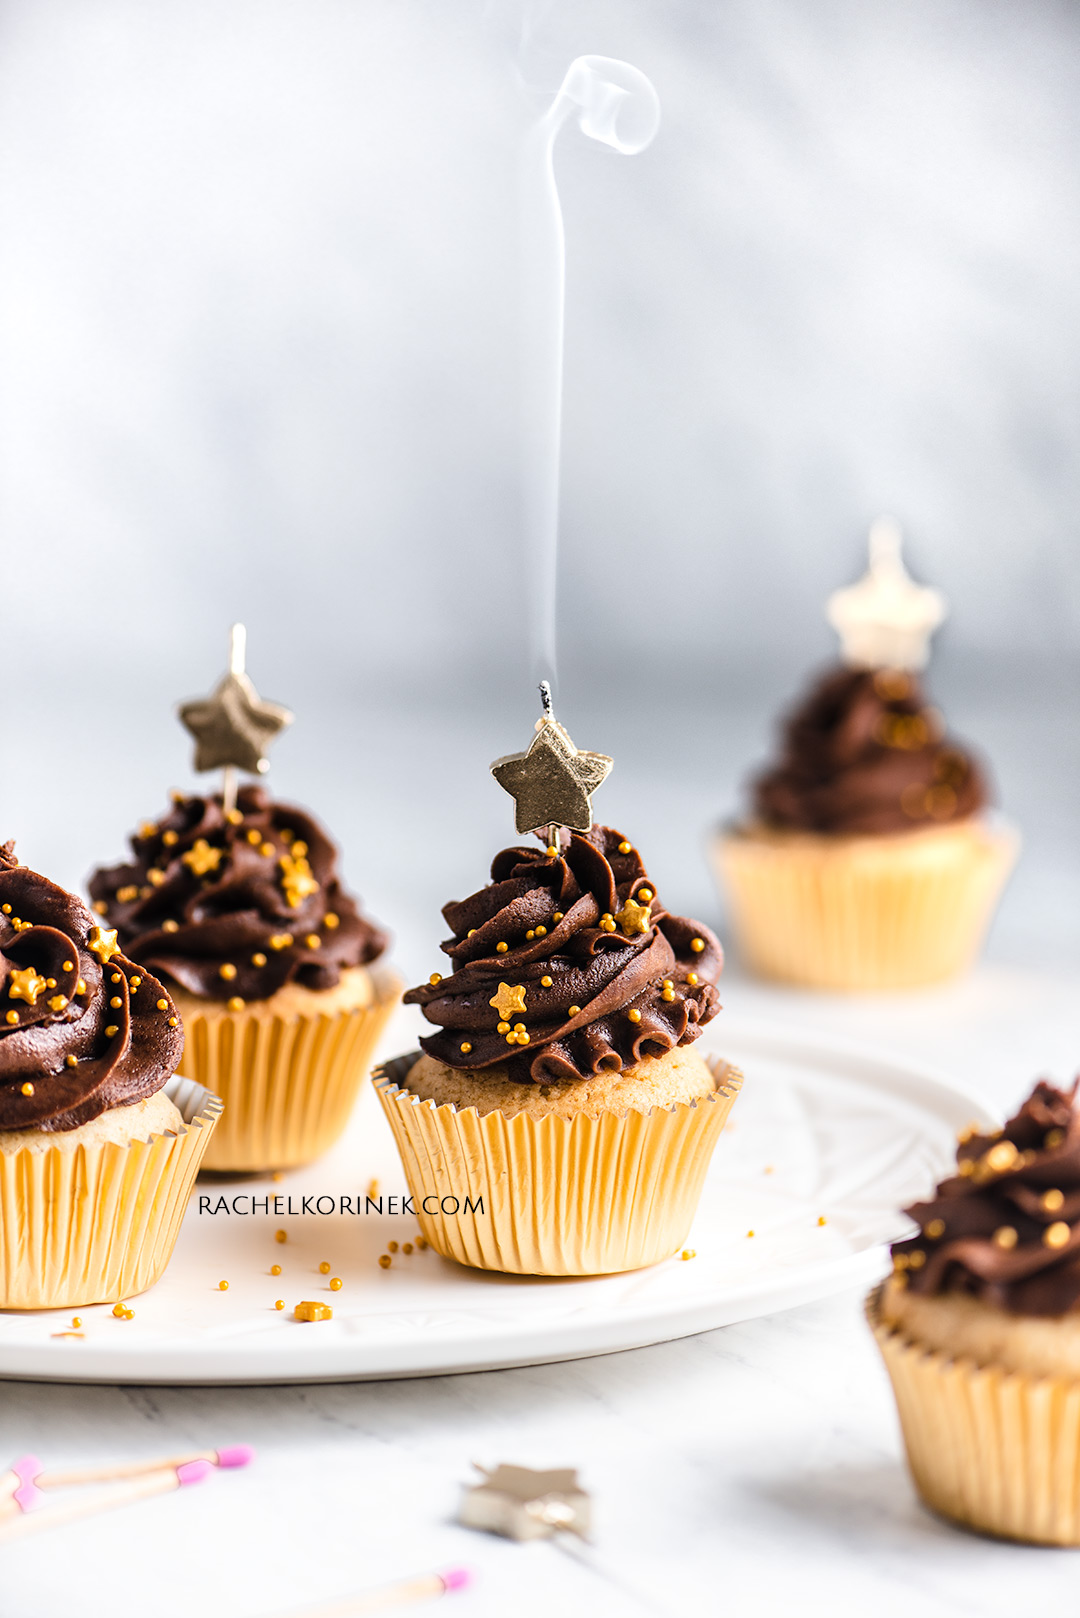 Rachel Korinek Food Photographer | Chocolate Cupcakes  Click to check out my latest food photography projects.  #twolovesstudio #beautifulcuisine #foodbloggerpro #foodphotography #learnfoodphotography #foodblogger #learnphotography #foodstyling #lightingtips #naturallight #foodphotographer